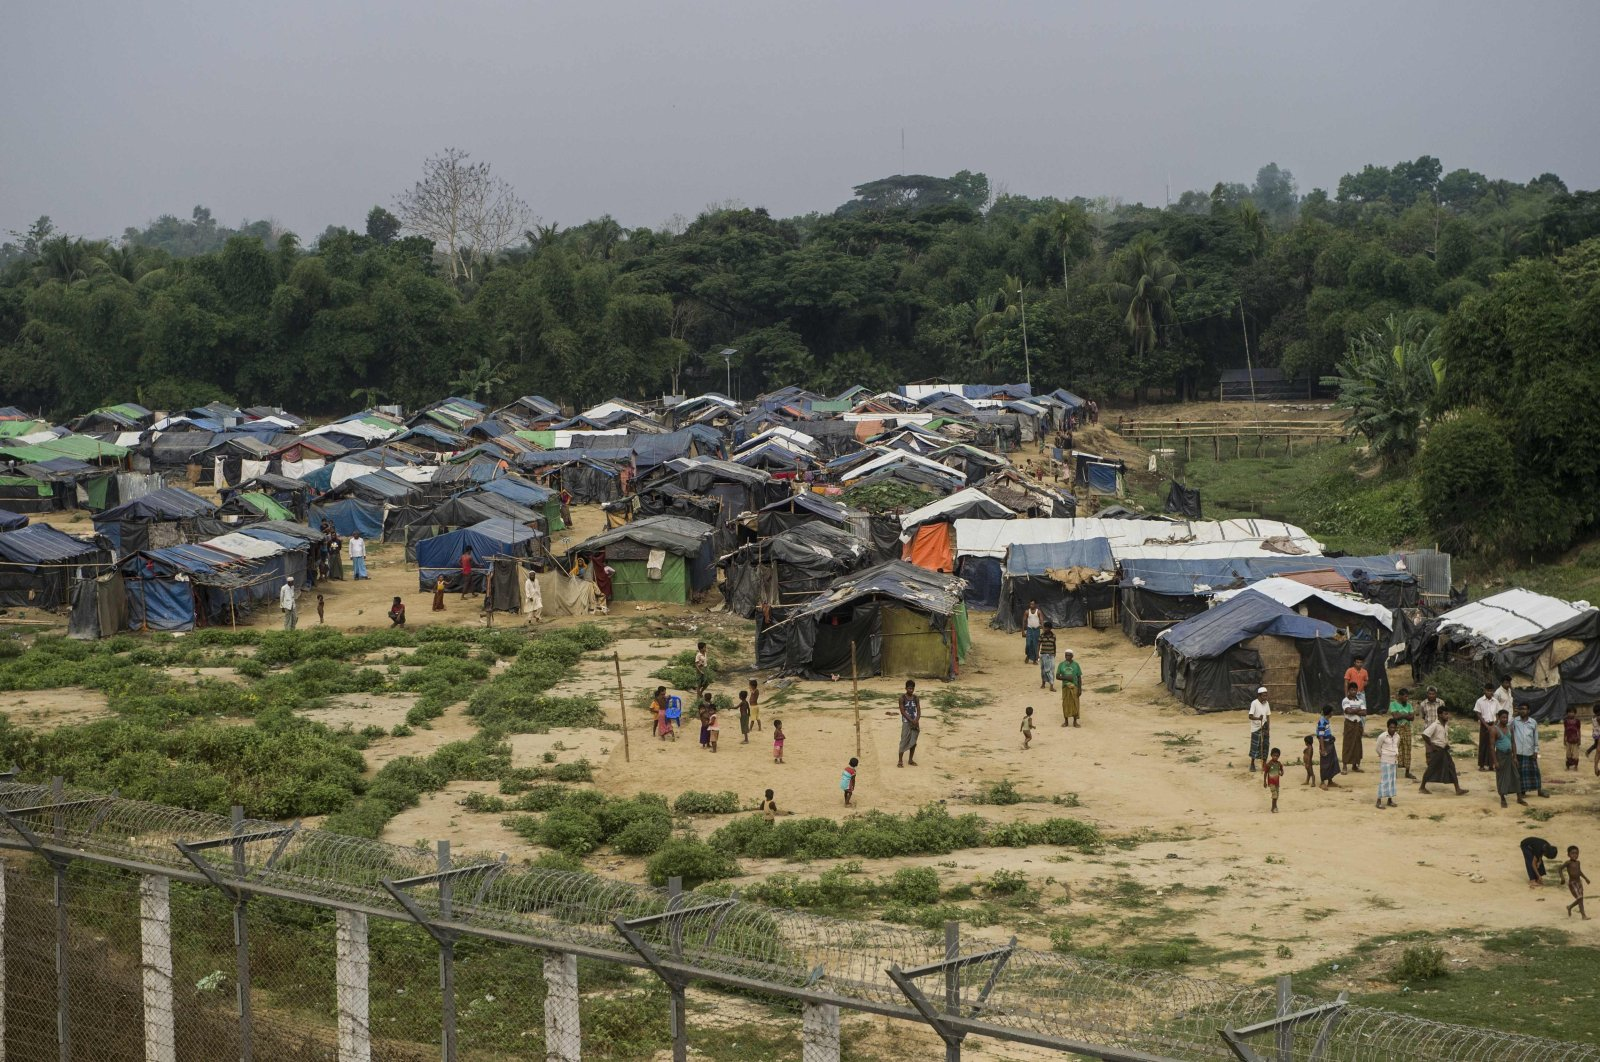 Rohingya refugees gather near their shelters behind Myanmar's border lined with barbed wire fences in Maungdaw district, Rakhine state, April 25, 2018. (AFP Photo)